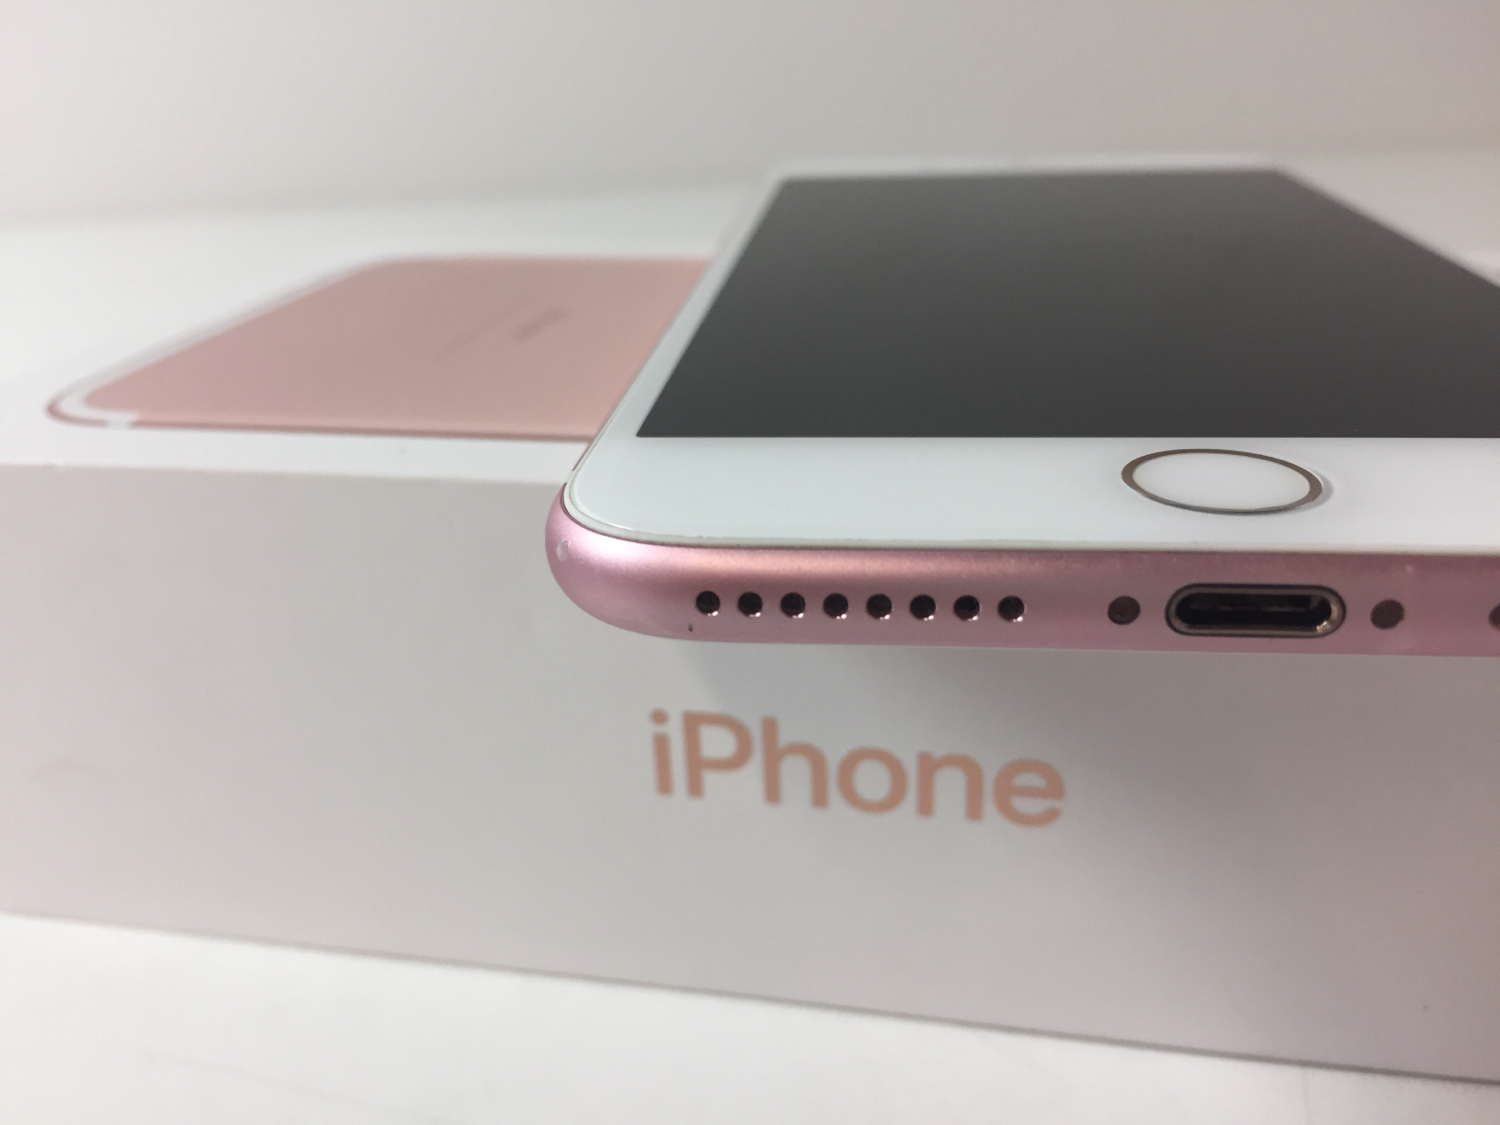 iPhone 7 Plus 128GB, 128GB, Rose Gold, obraz 8